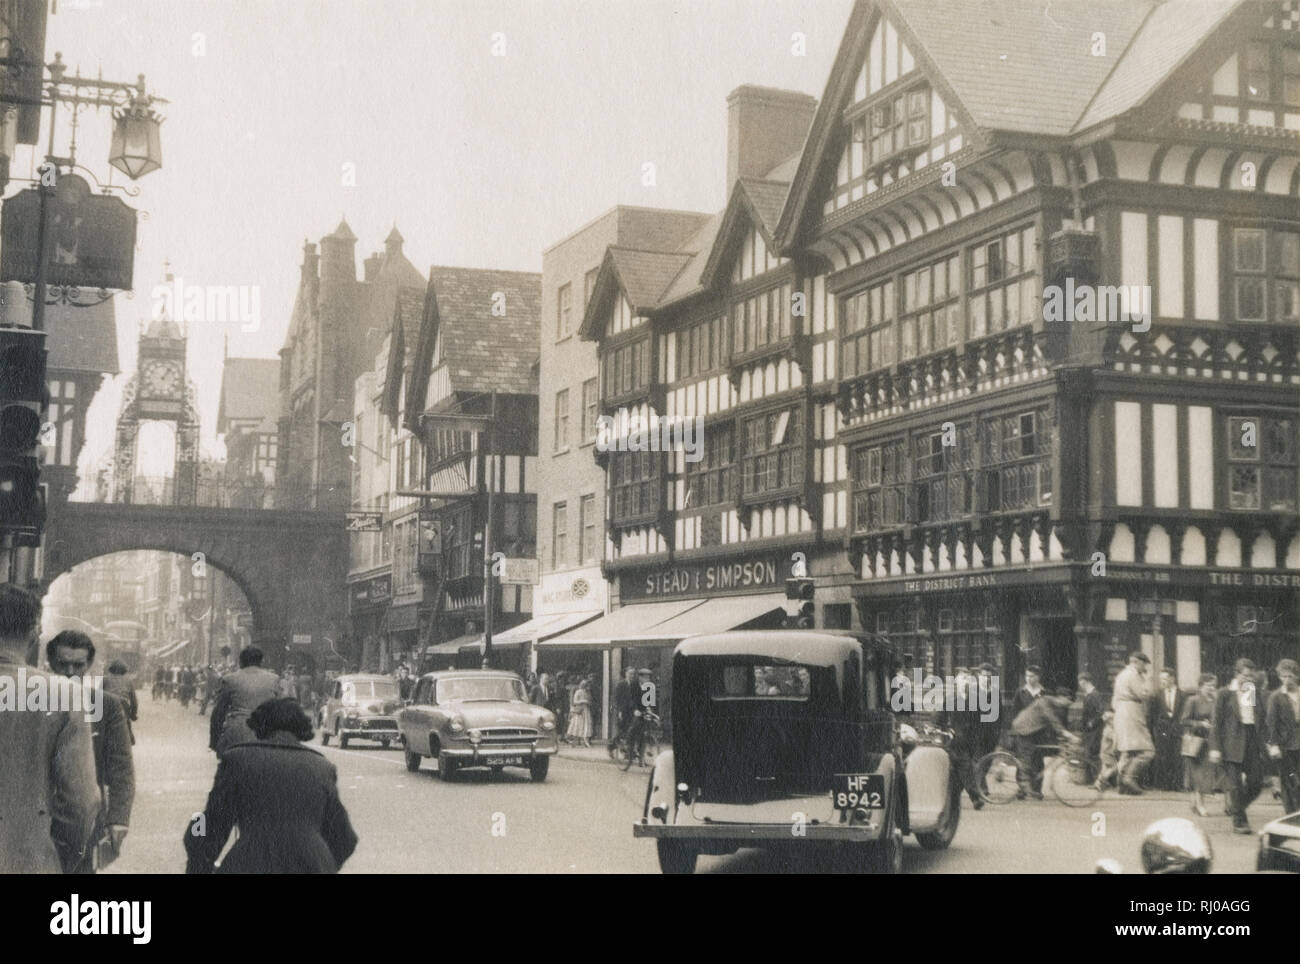 Antique c1950 photograph, the Eastgate Clock with shops and traffic on Foregate Street in Chester, England, UK. The shop Stead & Simpson is located at 11 Foregate St. SOURCE: ORIGINAL VINTAGE PHOTOGRAPH - Stock Image